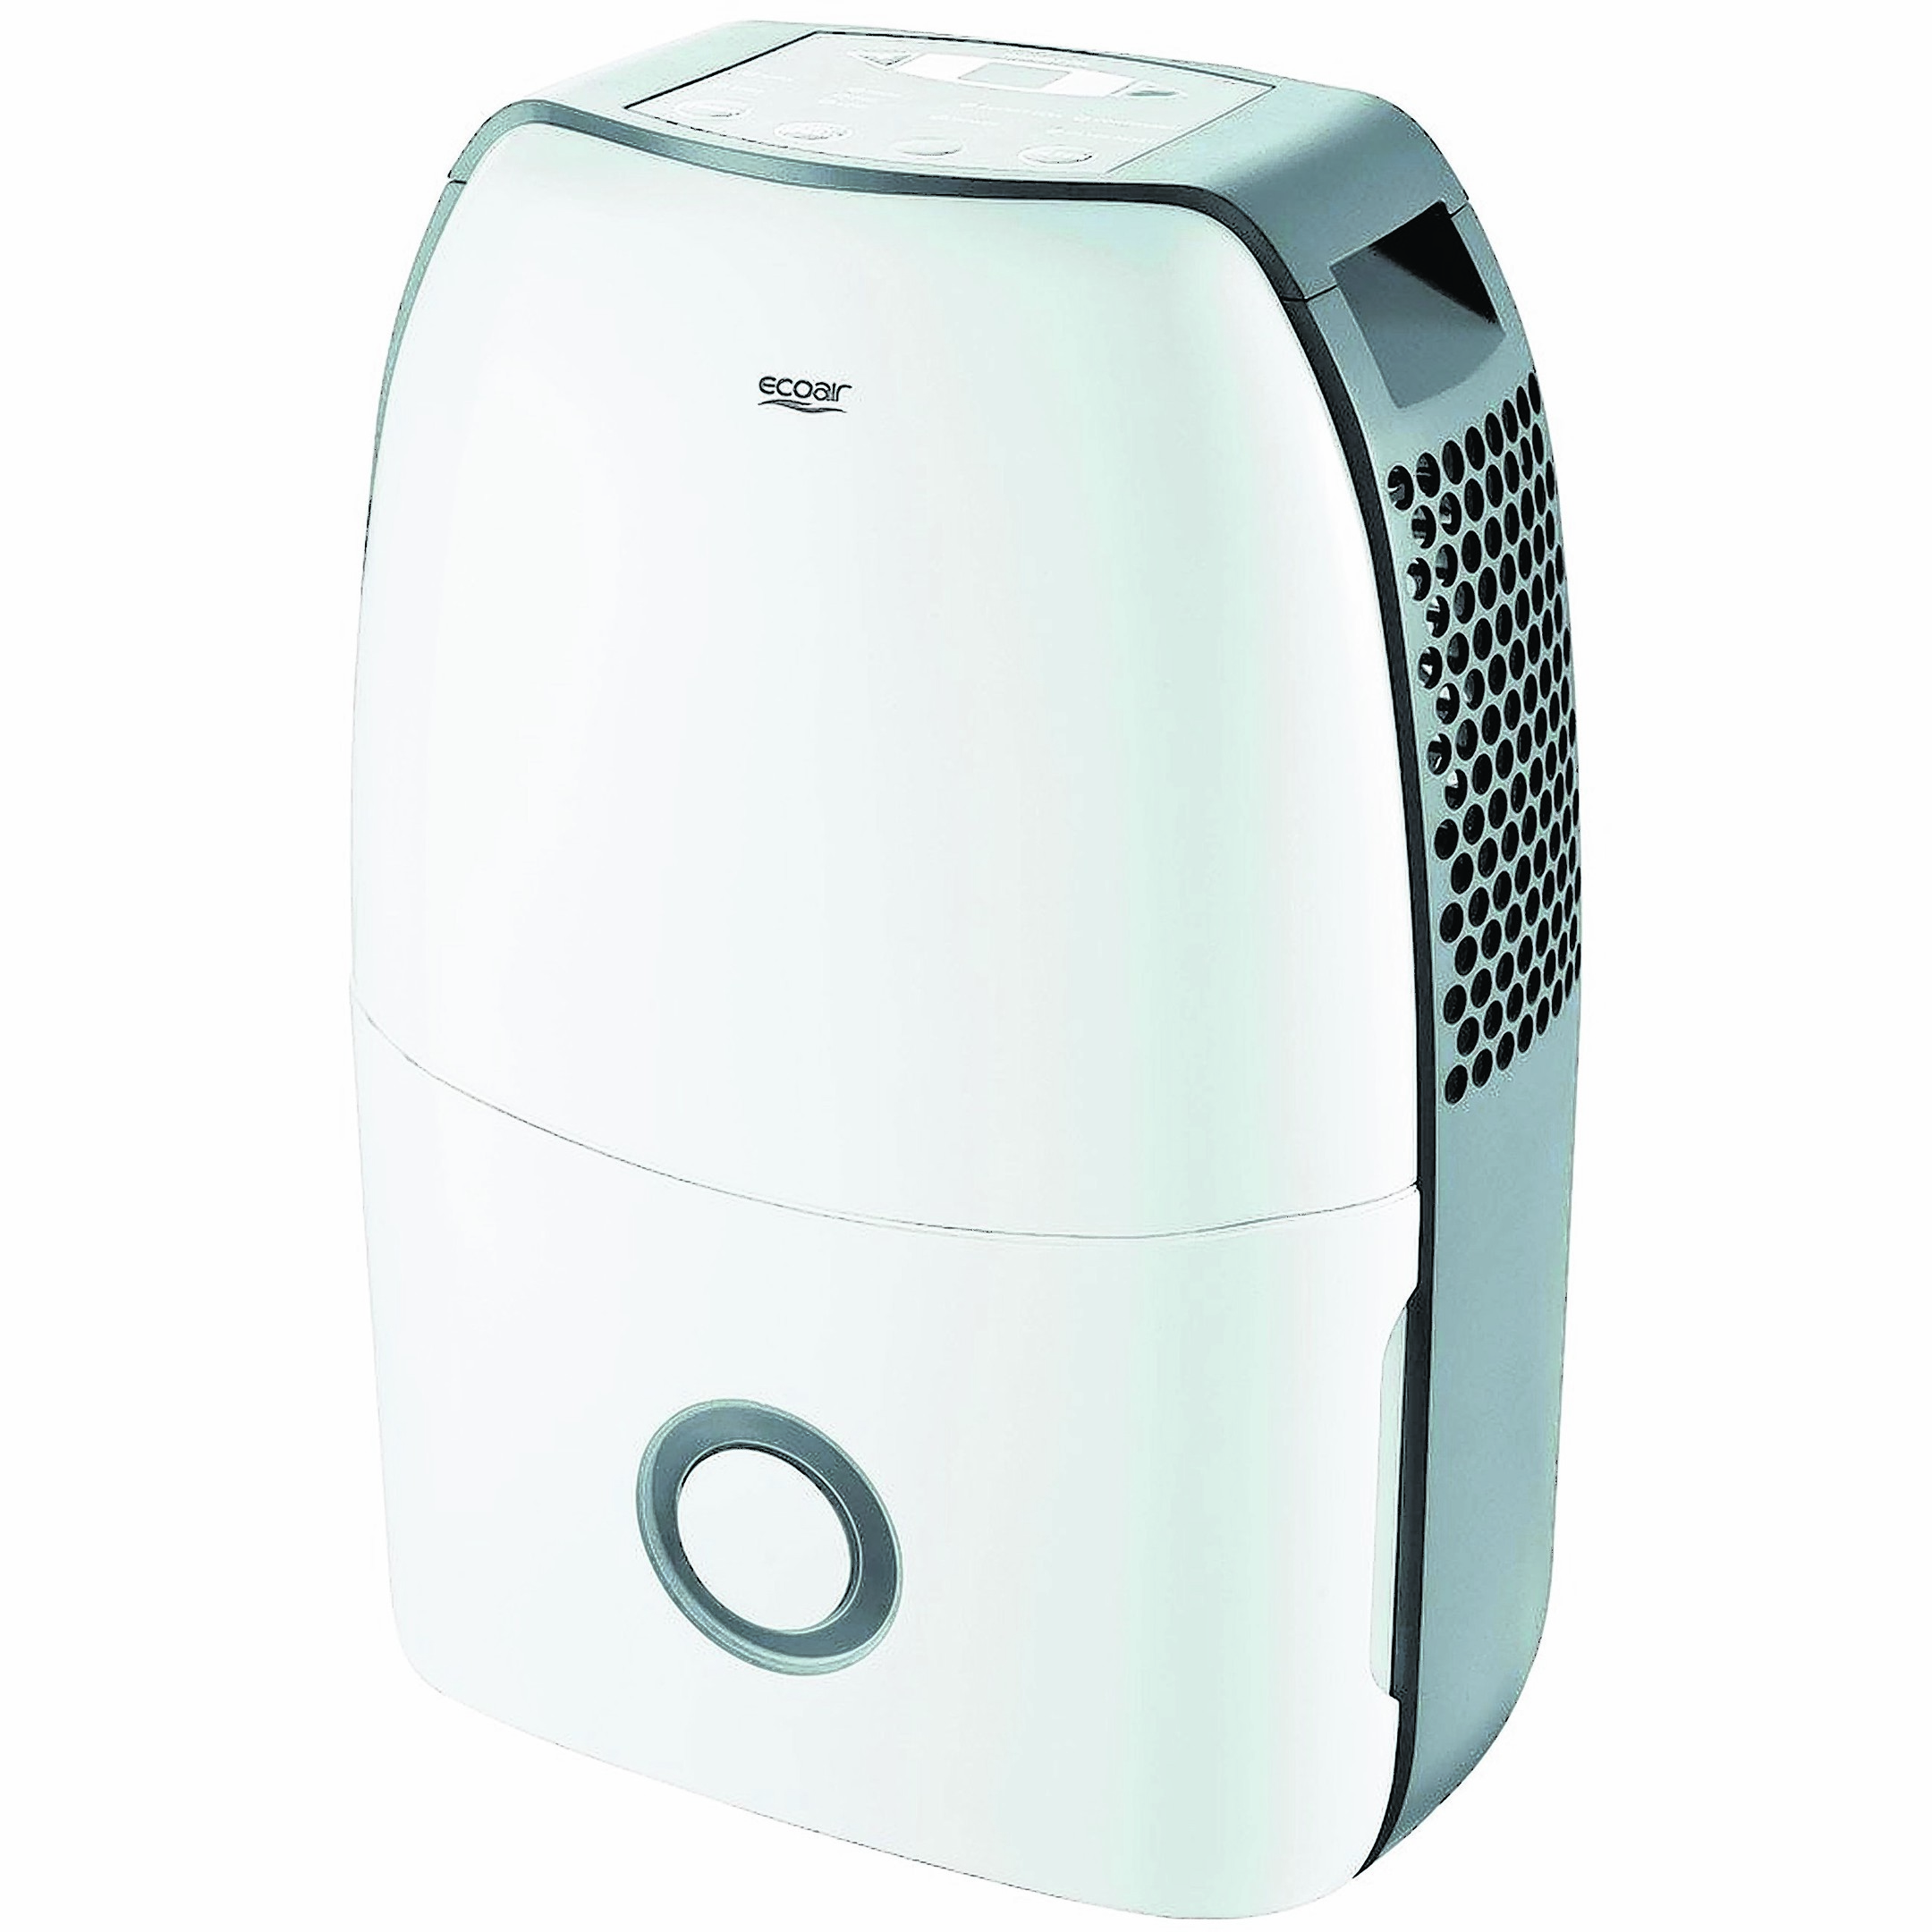 Undated Handout Photo of the EcoAir DC18 Compact Portable Dehumidifier, available from amazon.co.uk. See PA Feature GADGETS Big Clean Up. Picture credit should read: PA Photo/Handout. WARNING: This picture must only be used to accompany PA Feature GADGETS Big Clean Up. WARNING: This picture must only be used with the full product information as stated above.